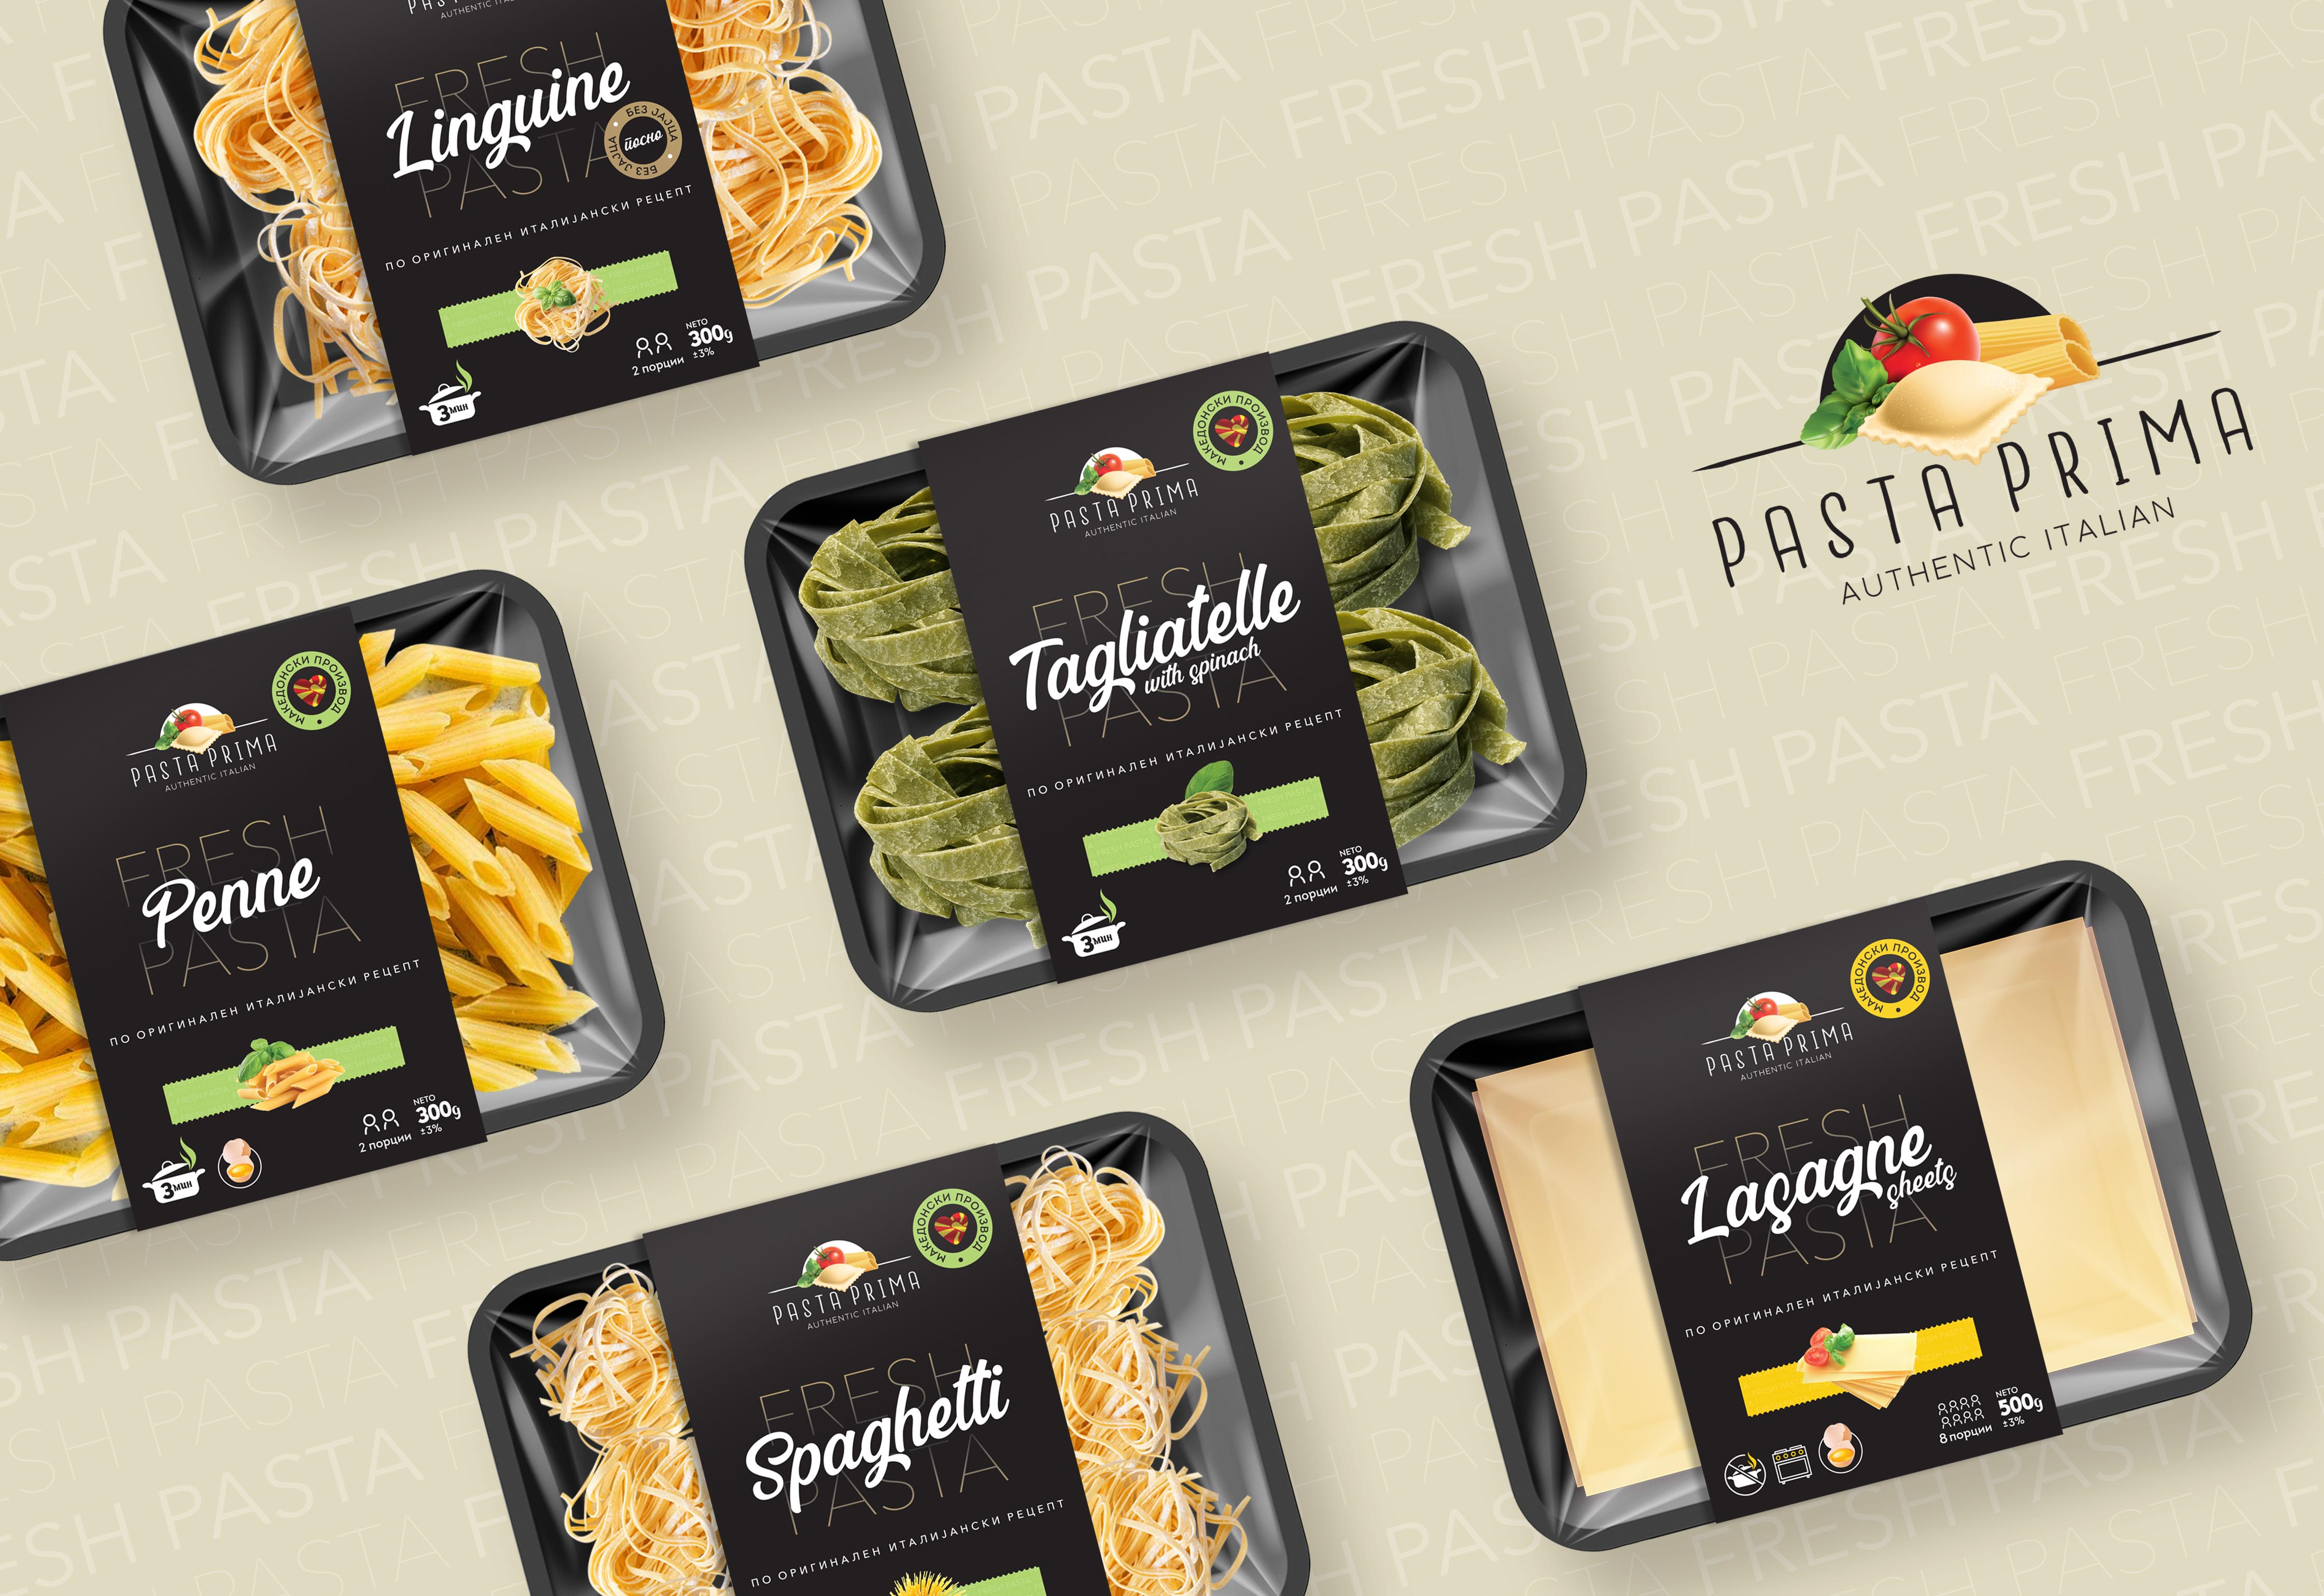 Packaging Design for Home-Made Fresh Pasta